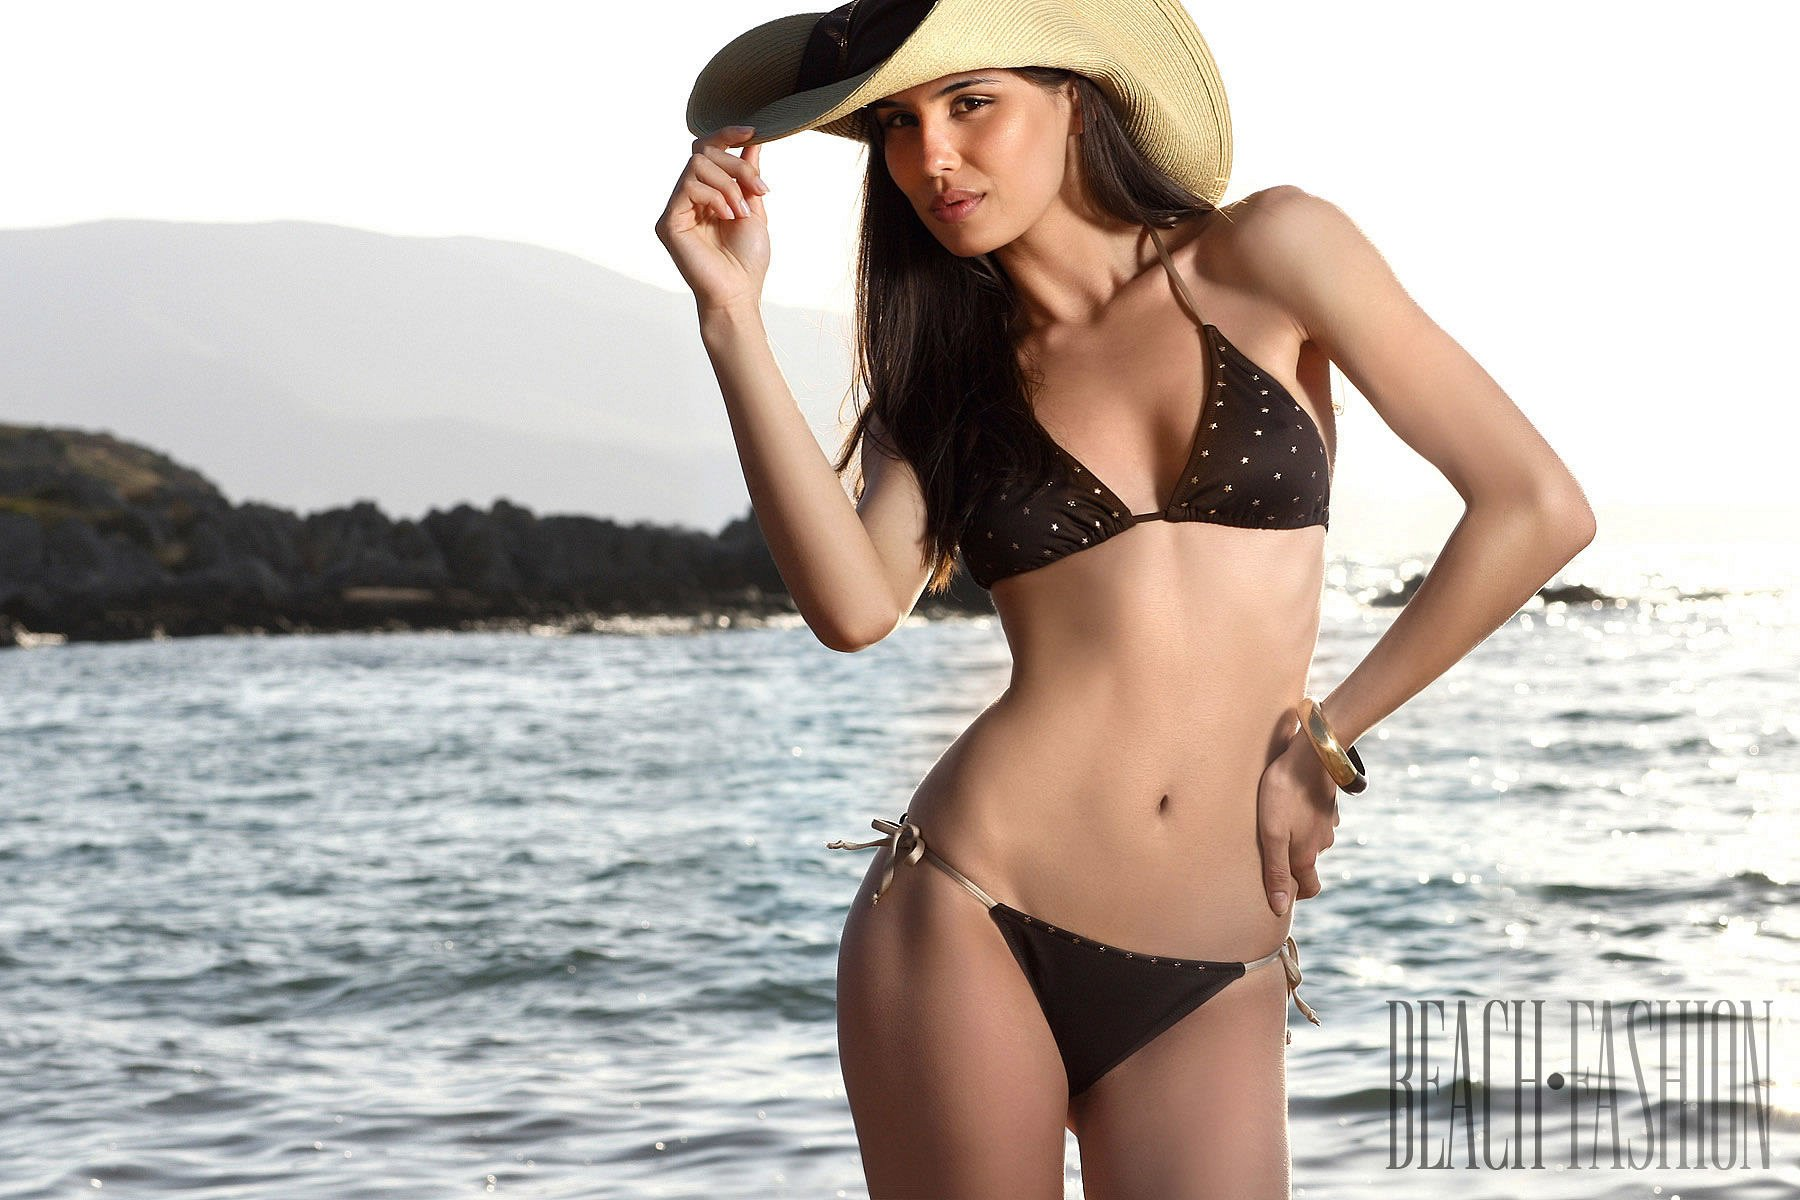 Jolidon 2010 collection - Swimwear - 1